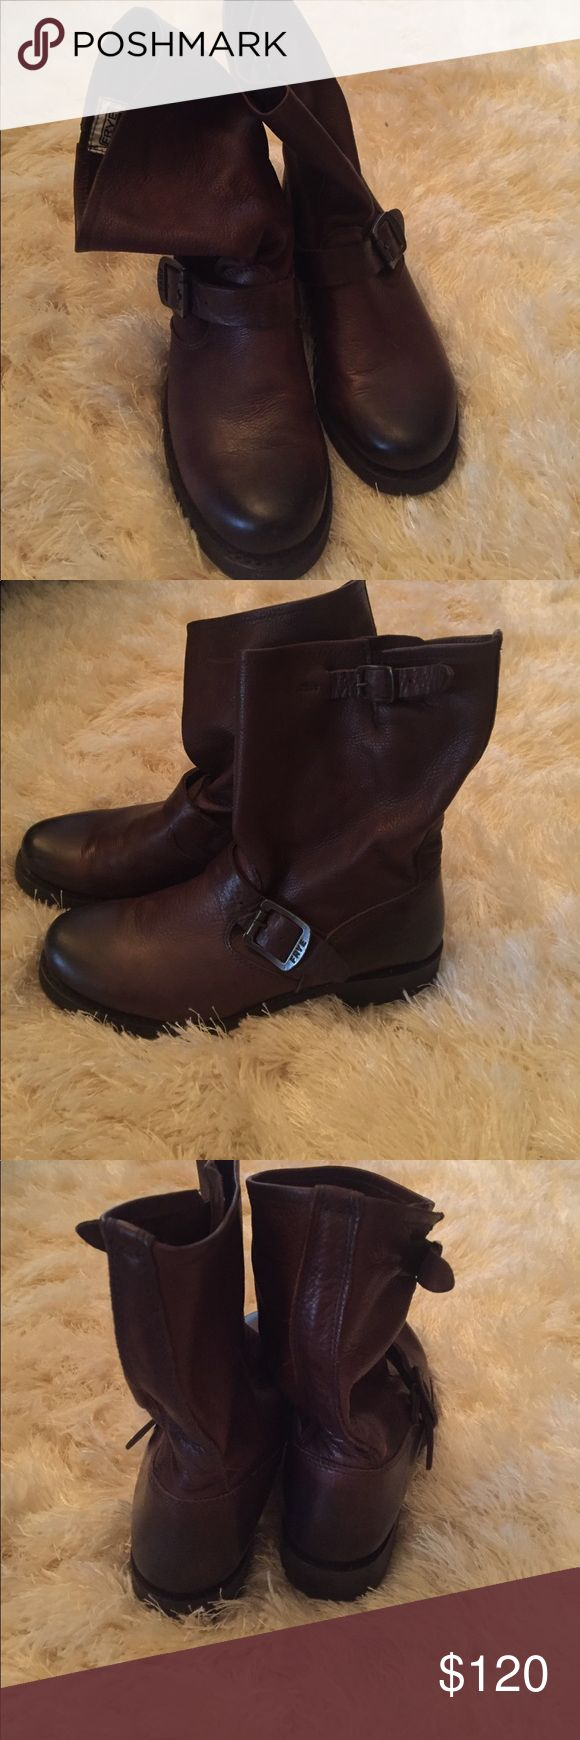 Frye Veronica short boots Amazing condition, barely worn. Frye Shoes Winter & Rain Boots